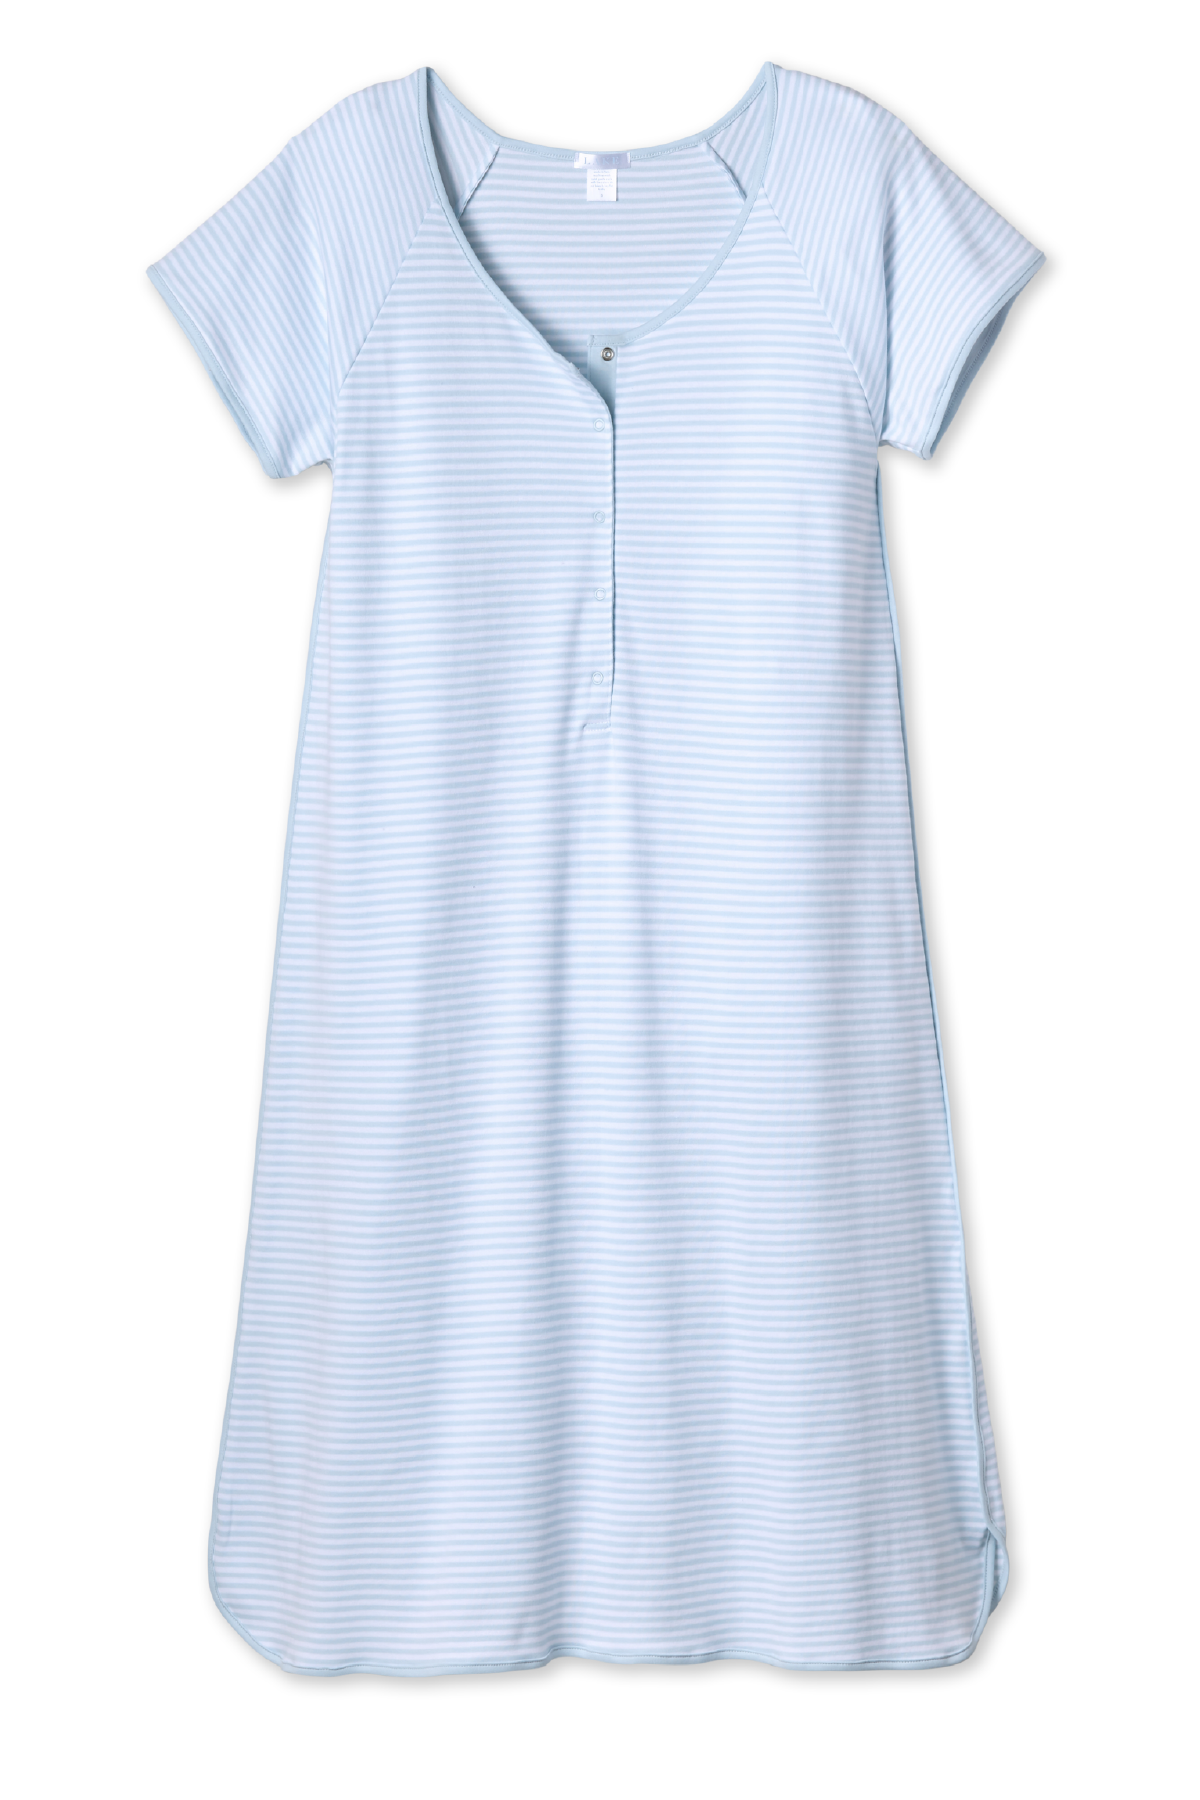 Pima Maternity Nightgown in Porcelain